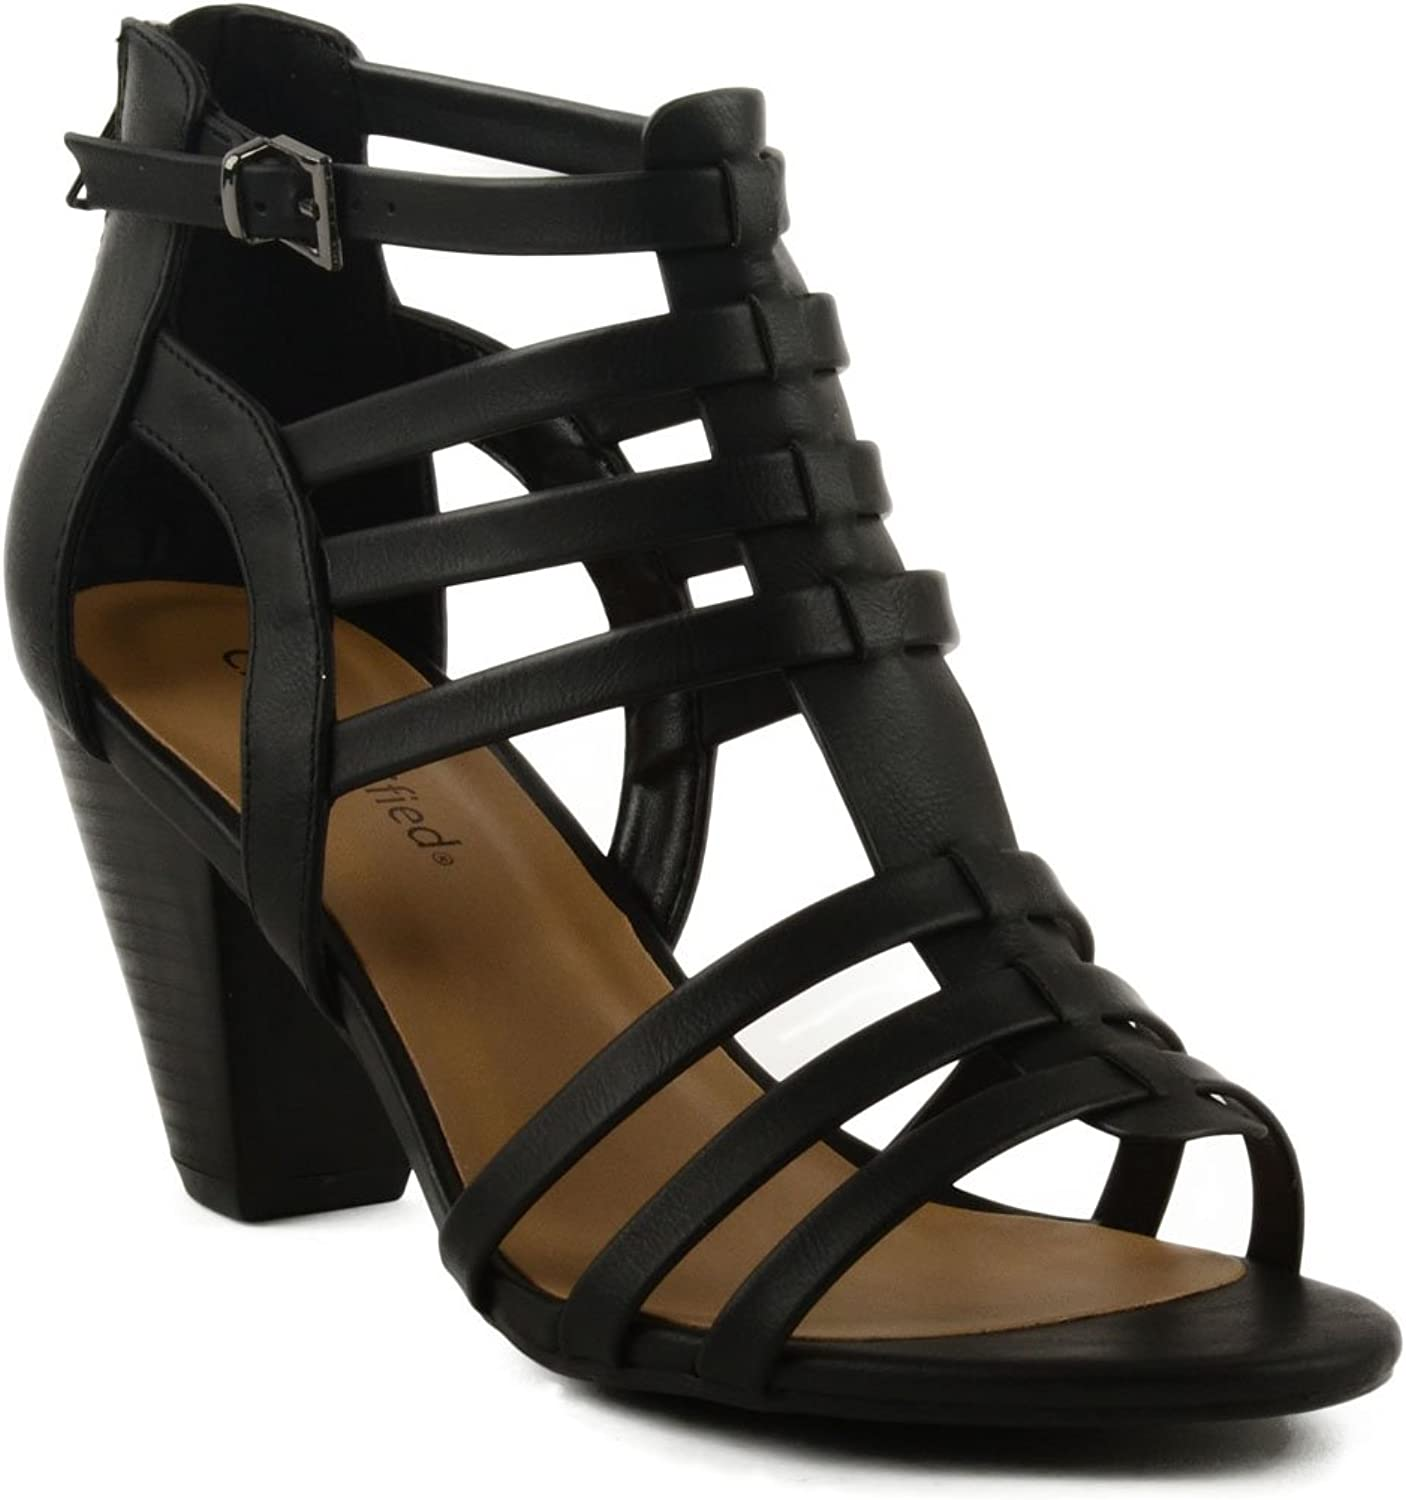 City Classified Women's City Classified Endora Tapered Block Heel With Weaved Straps & Zipped Back